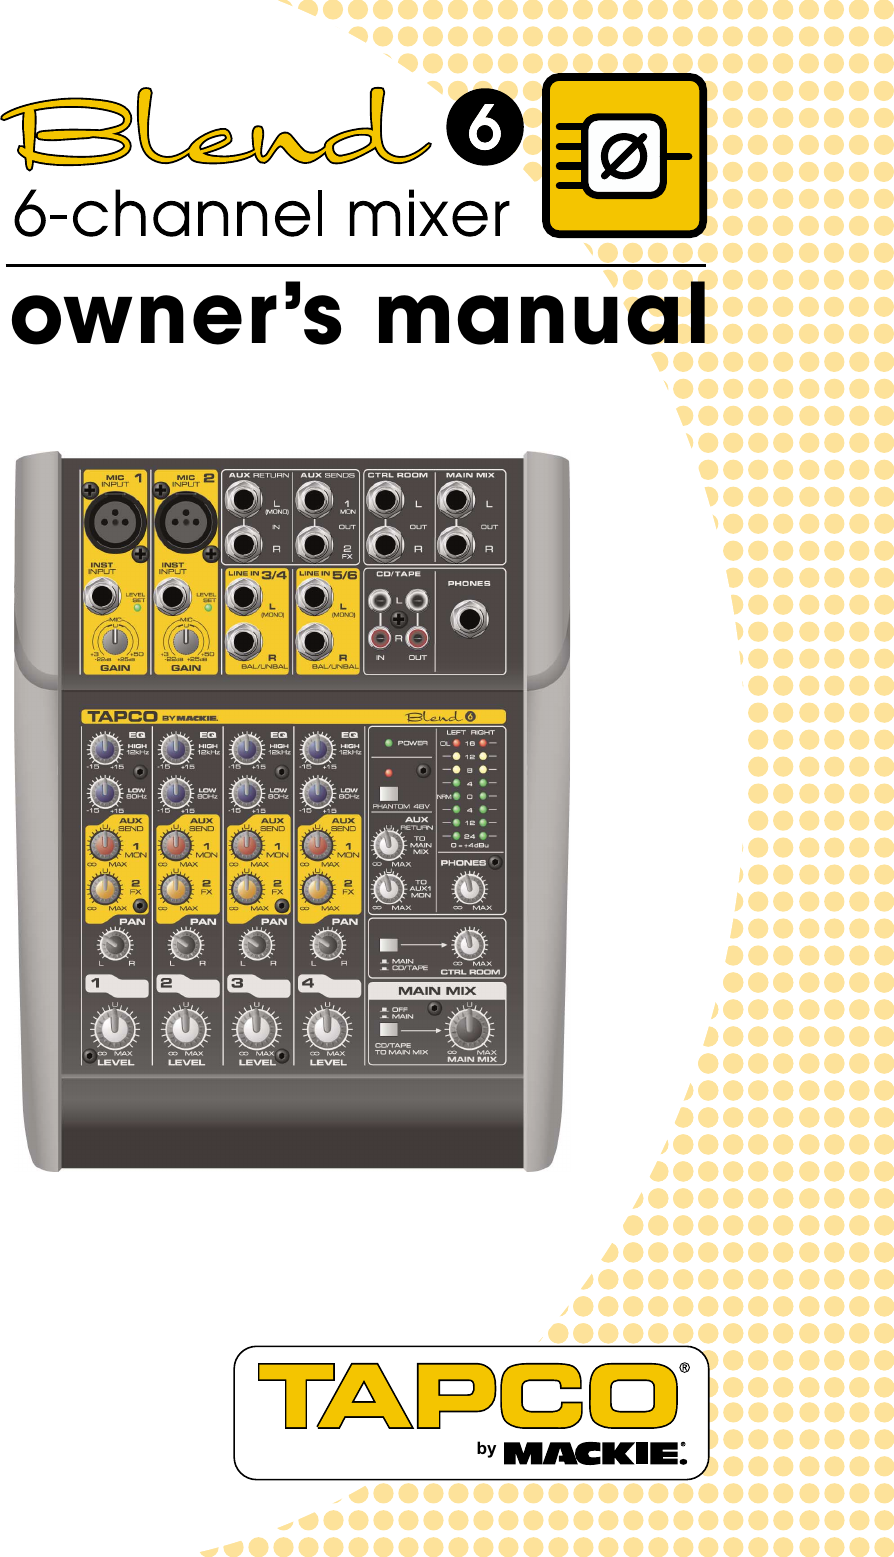 Tapco Blend 6 Users Manual Six Channel Mixer Owners